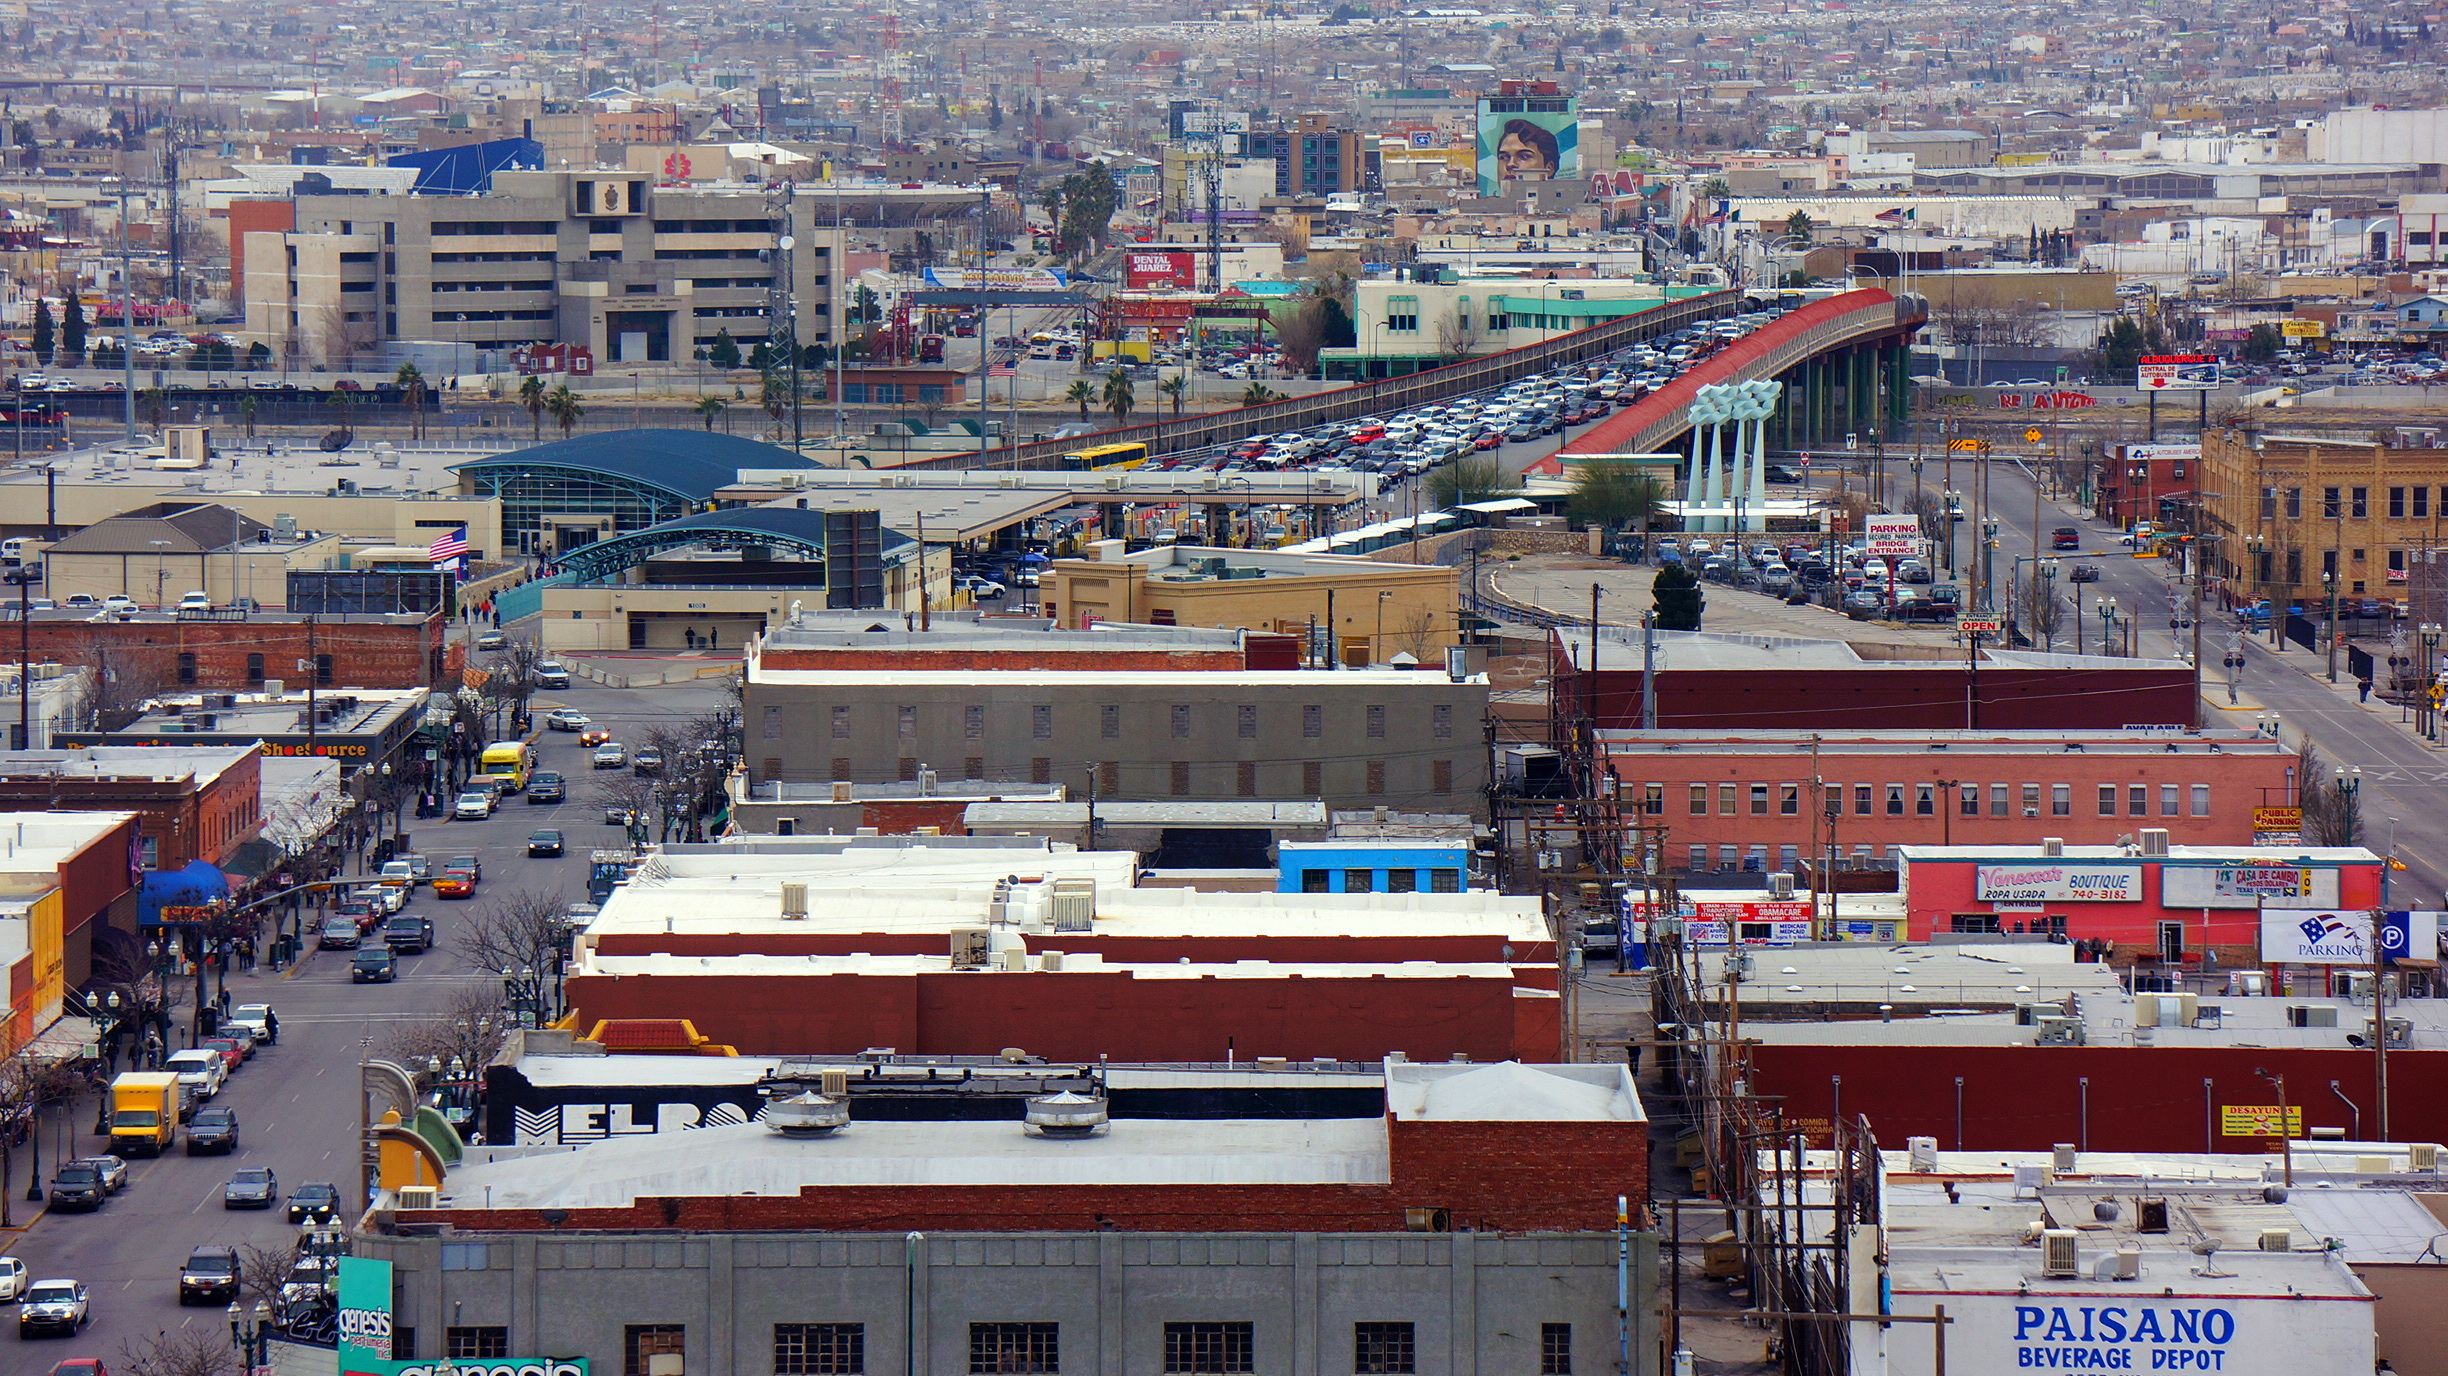 photo essay crossing the el paso juarez border  a view of el paso juaacuterez and the international border that separates them as seen from the top of el paso s camino real hotel kevin lees